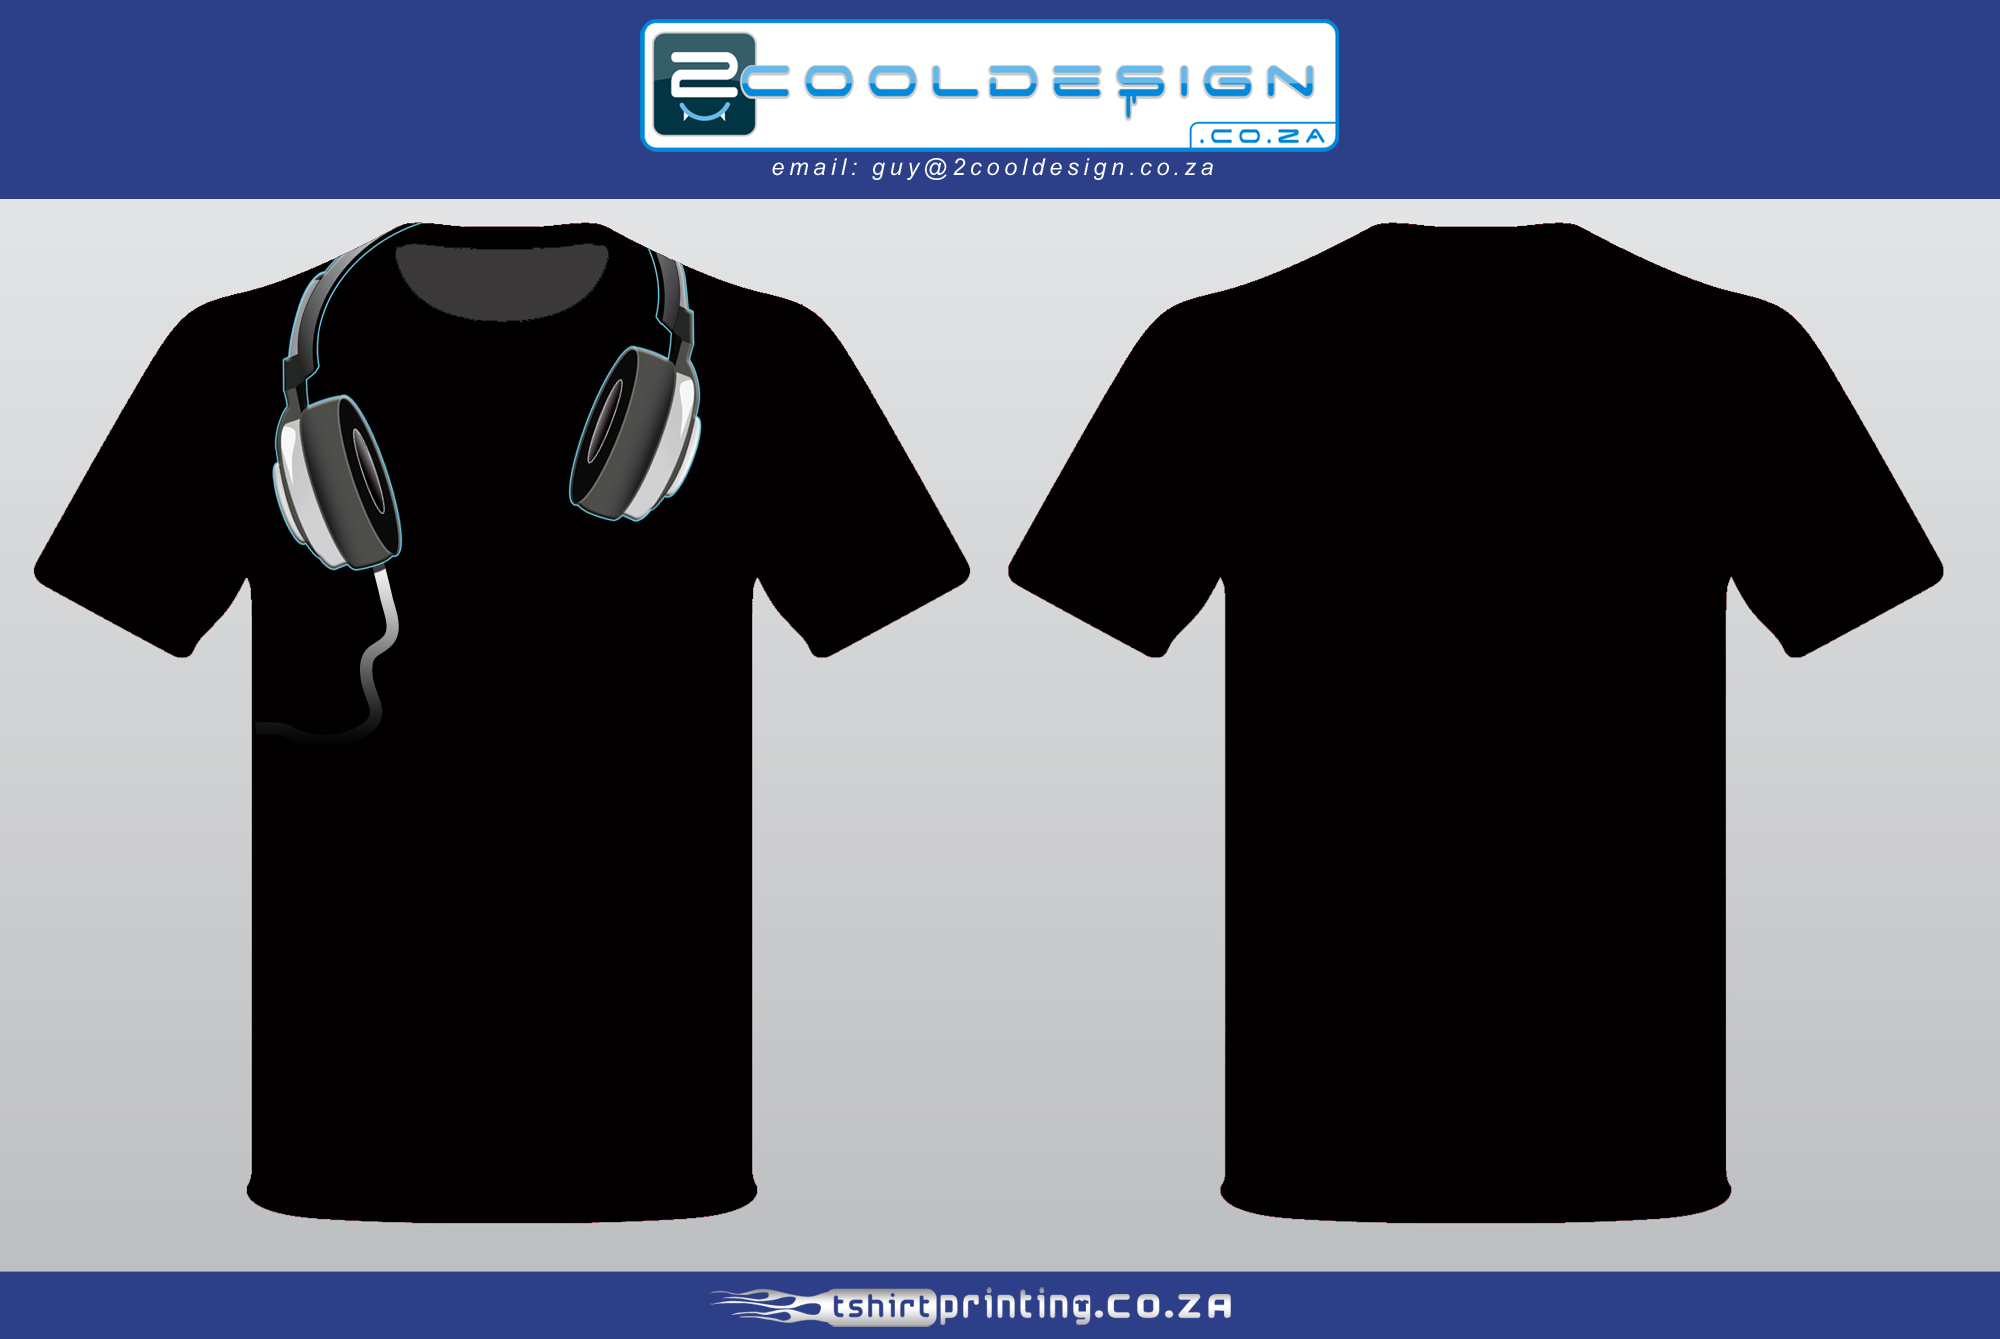 Earphones t t shirt printing ideas t shirts online for T shirt printers online